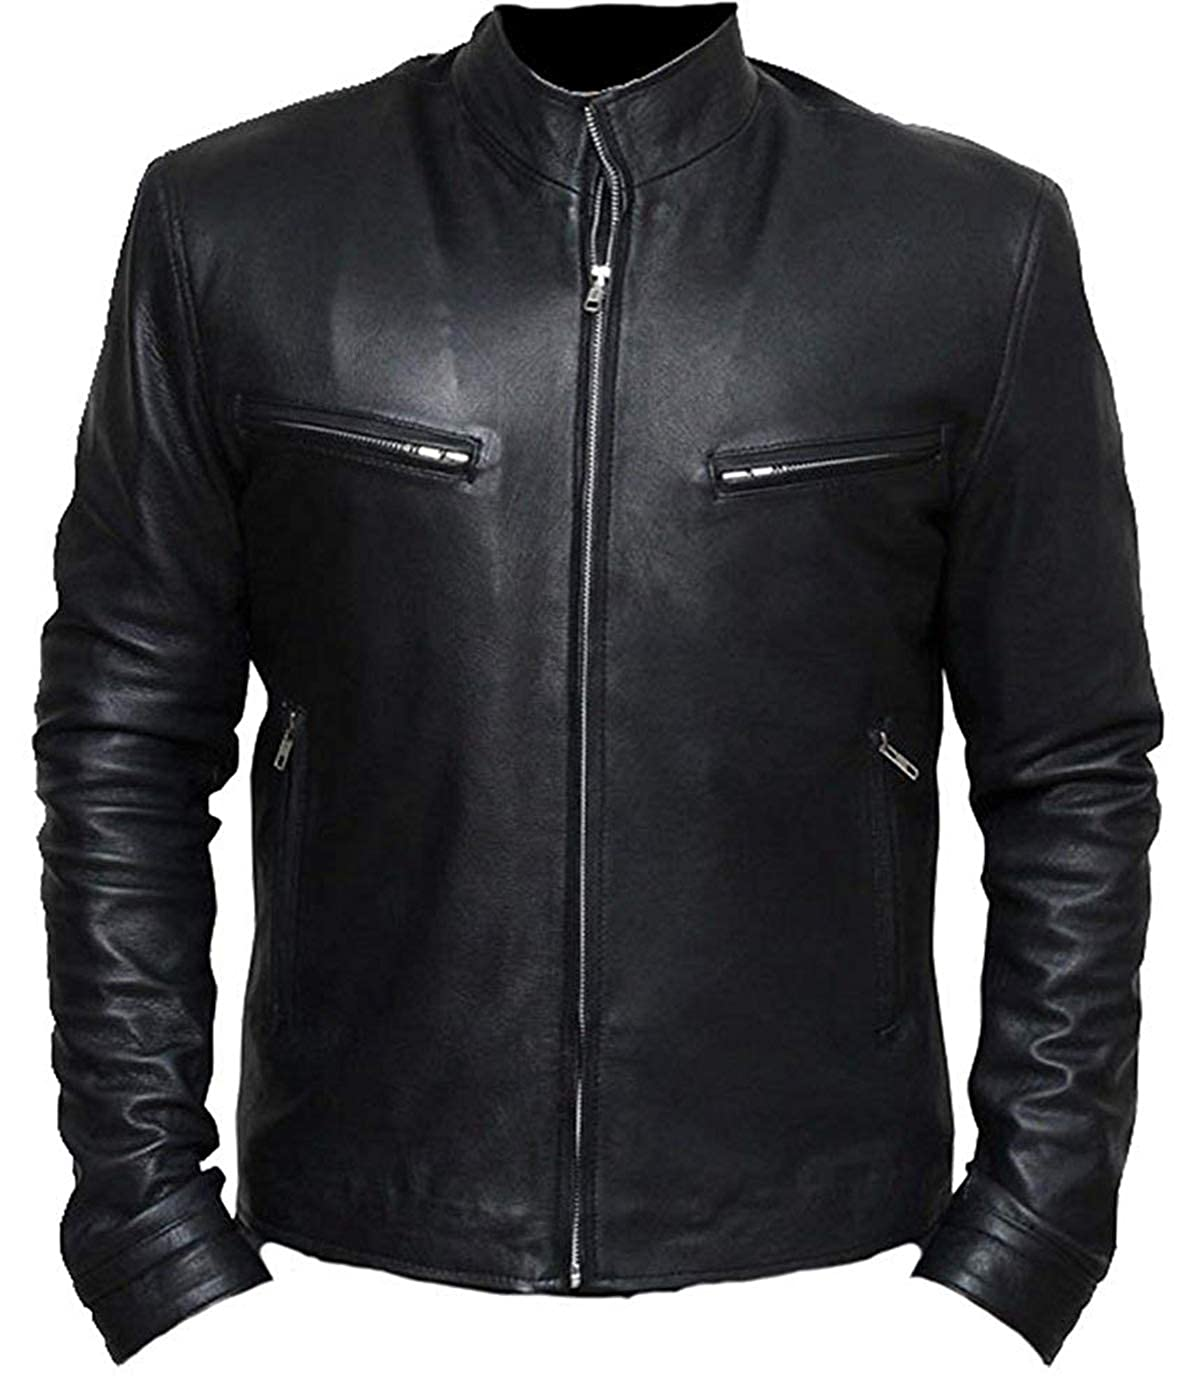 Fast and Furious 6 Vin Diesel Black Real Leather Jacket at